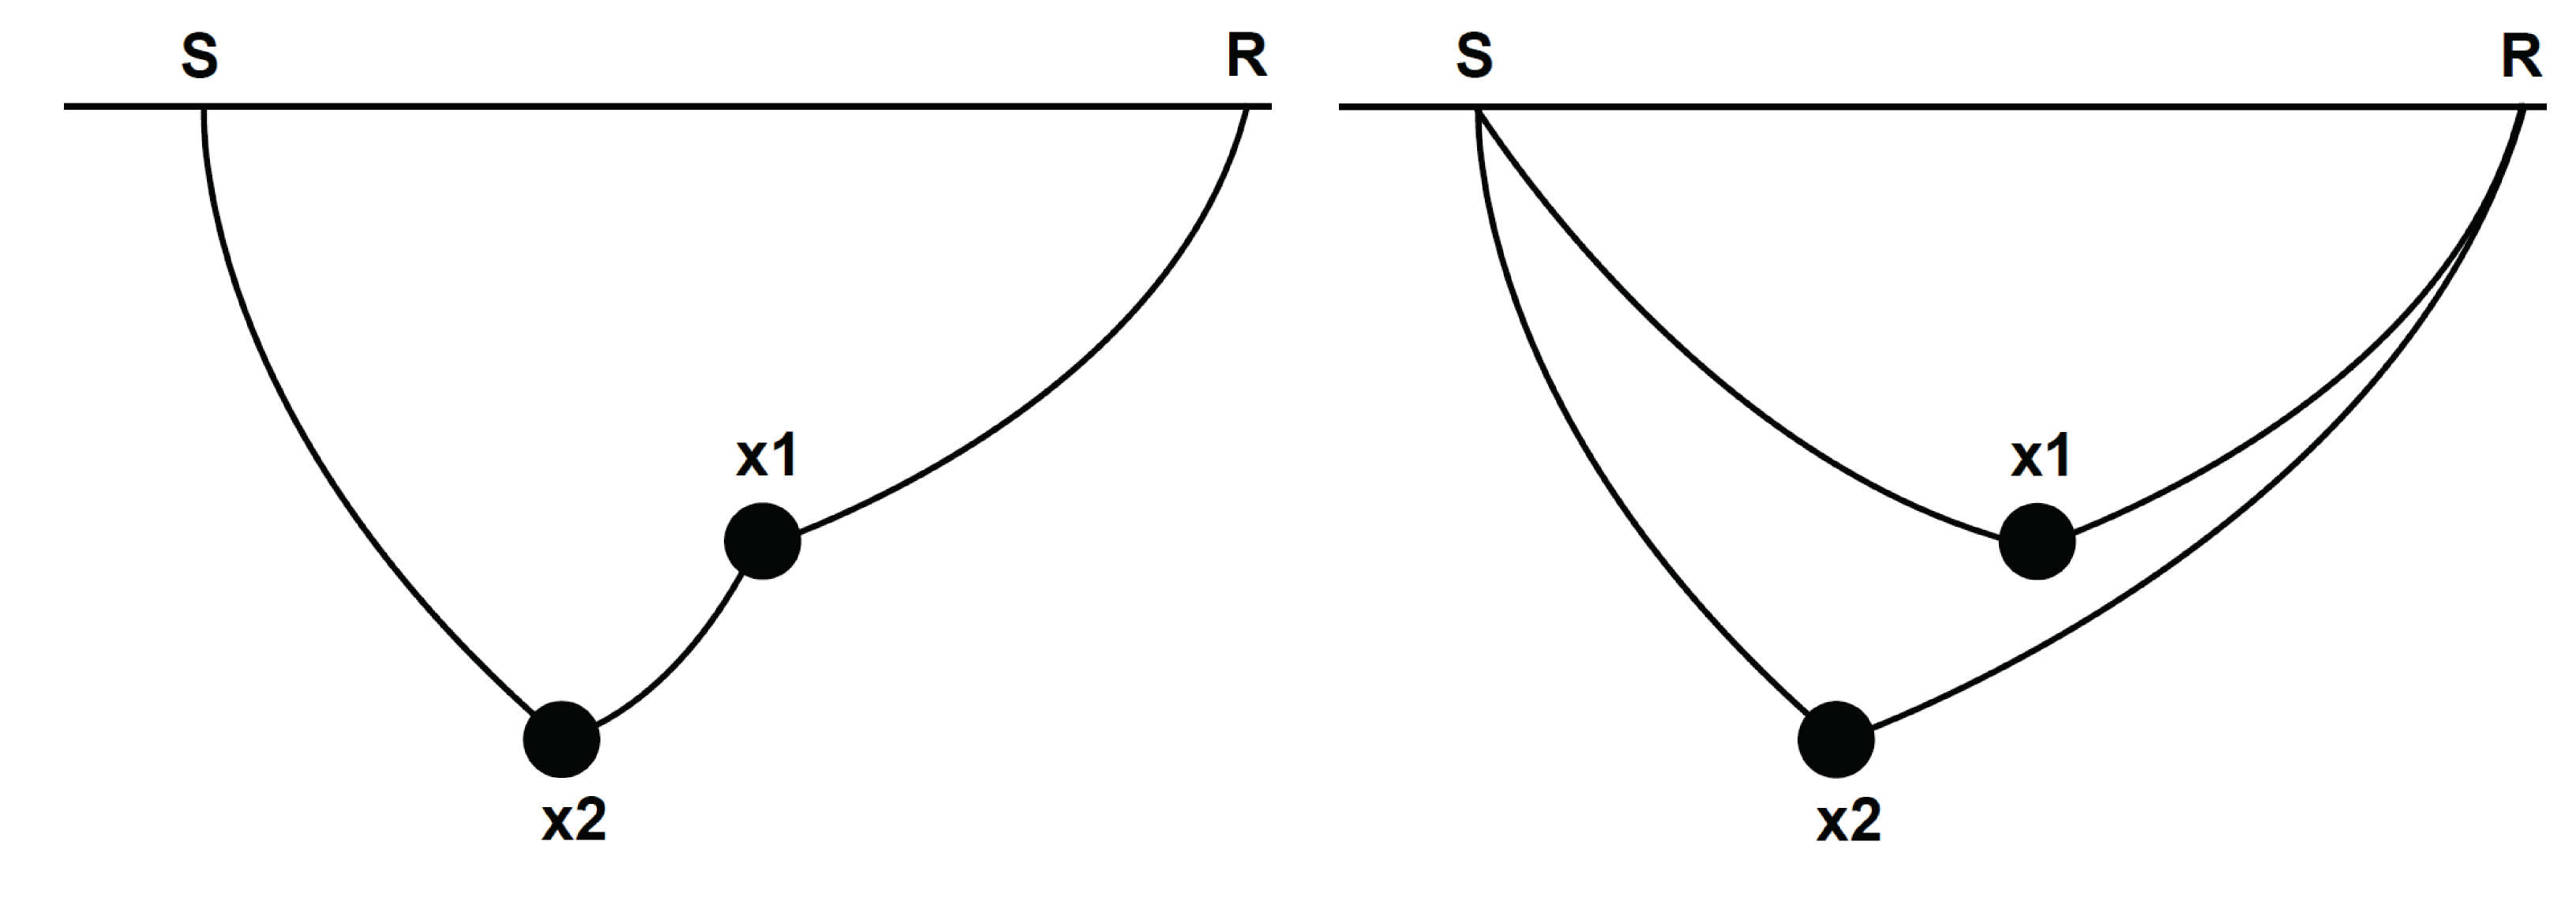 fig_doublescattering.png